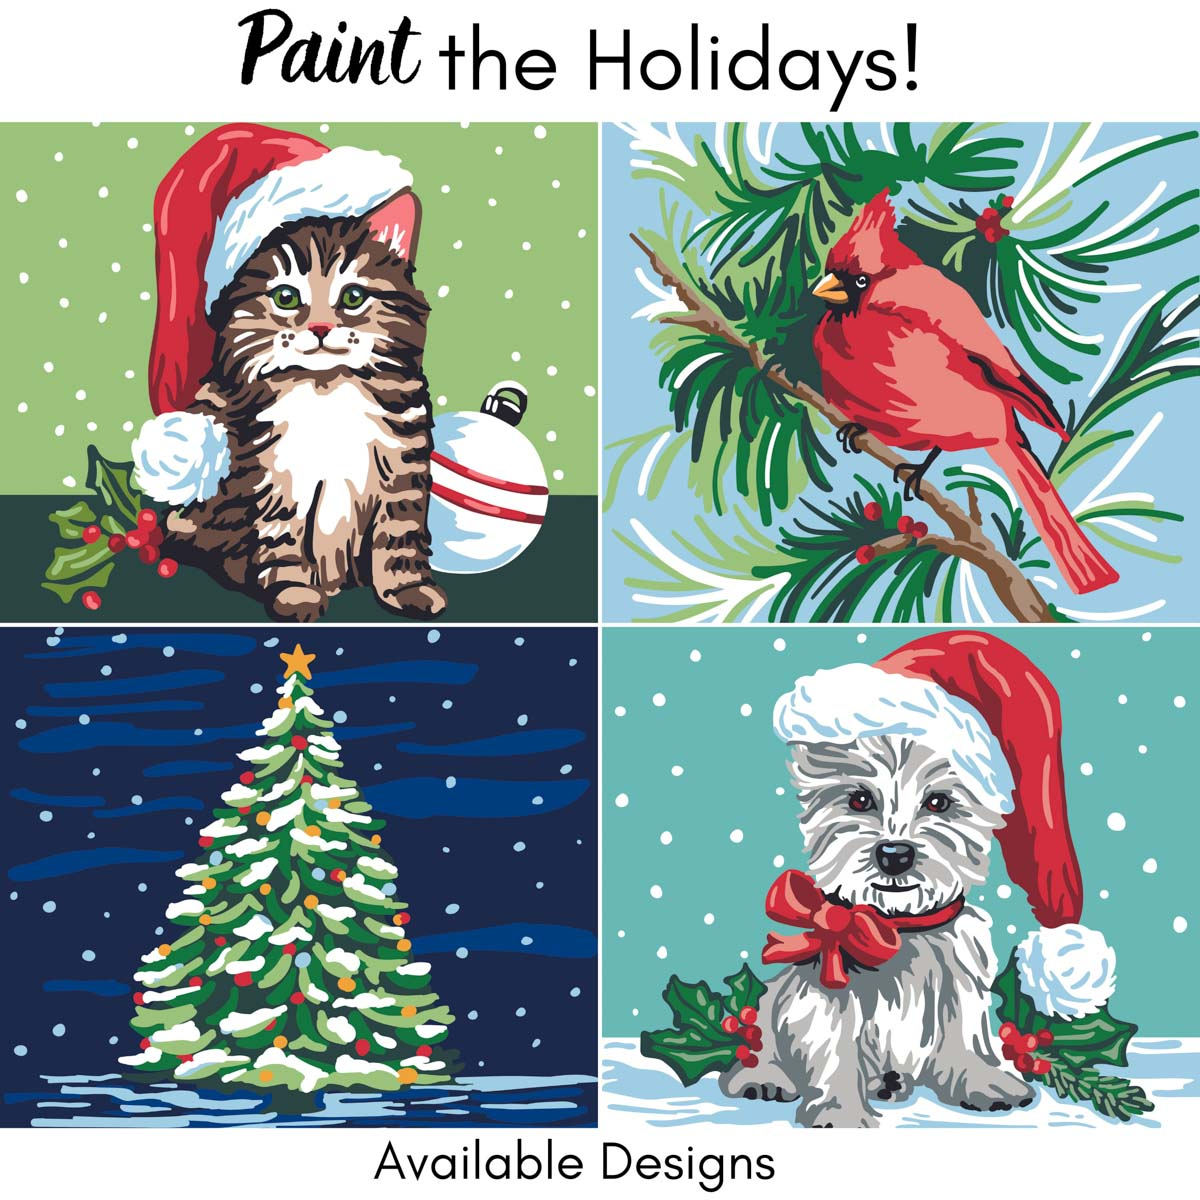 Plaid ® Let's Paint™ Modern Paint-by-Number - Christmas Kitten - 17924